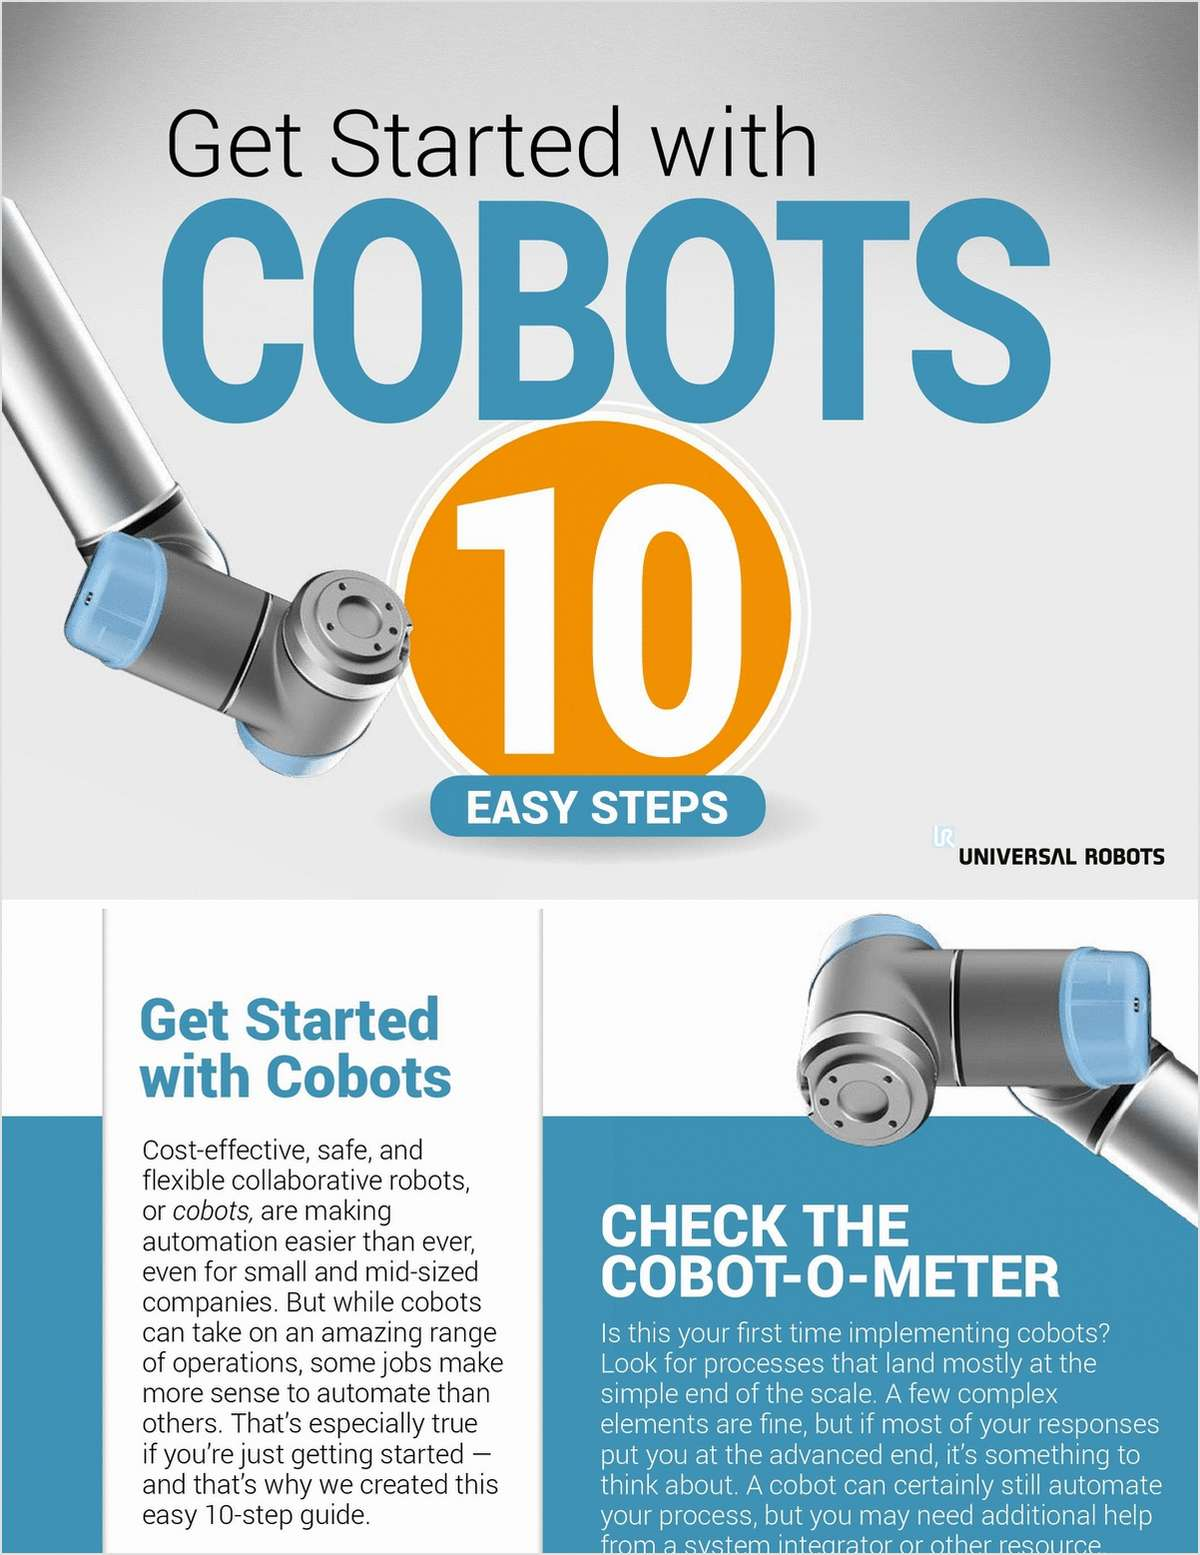 Getting Started with Cobots in 10 Easy Steps